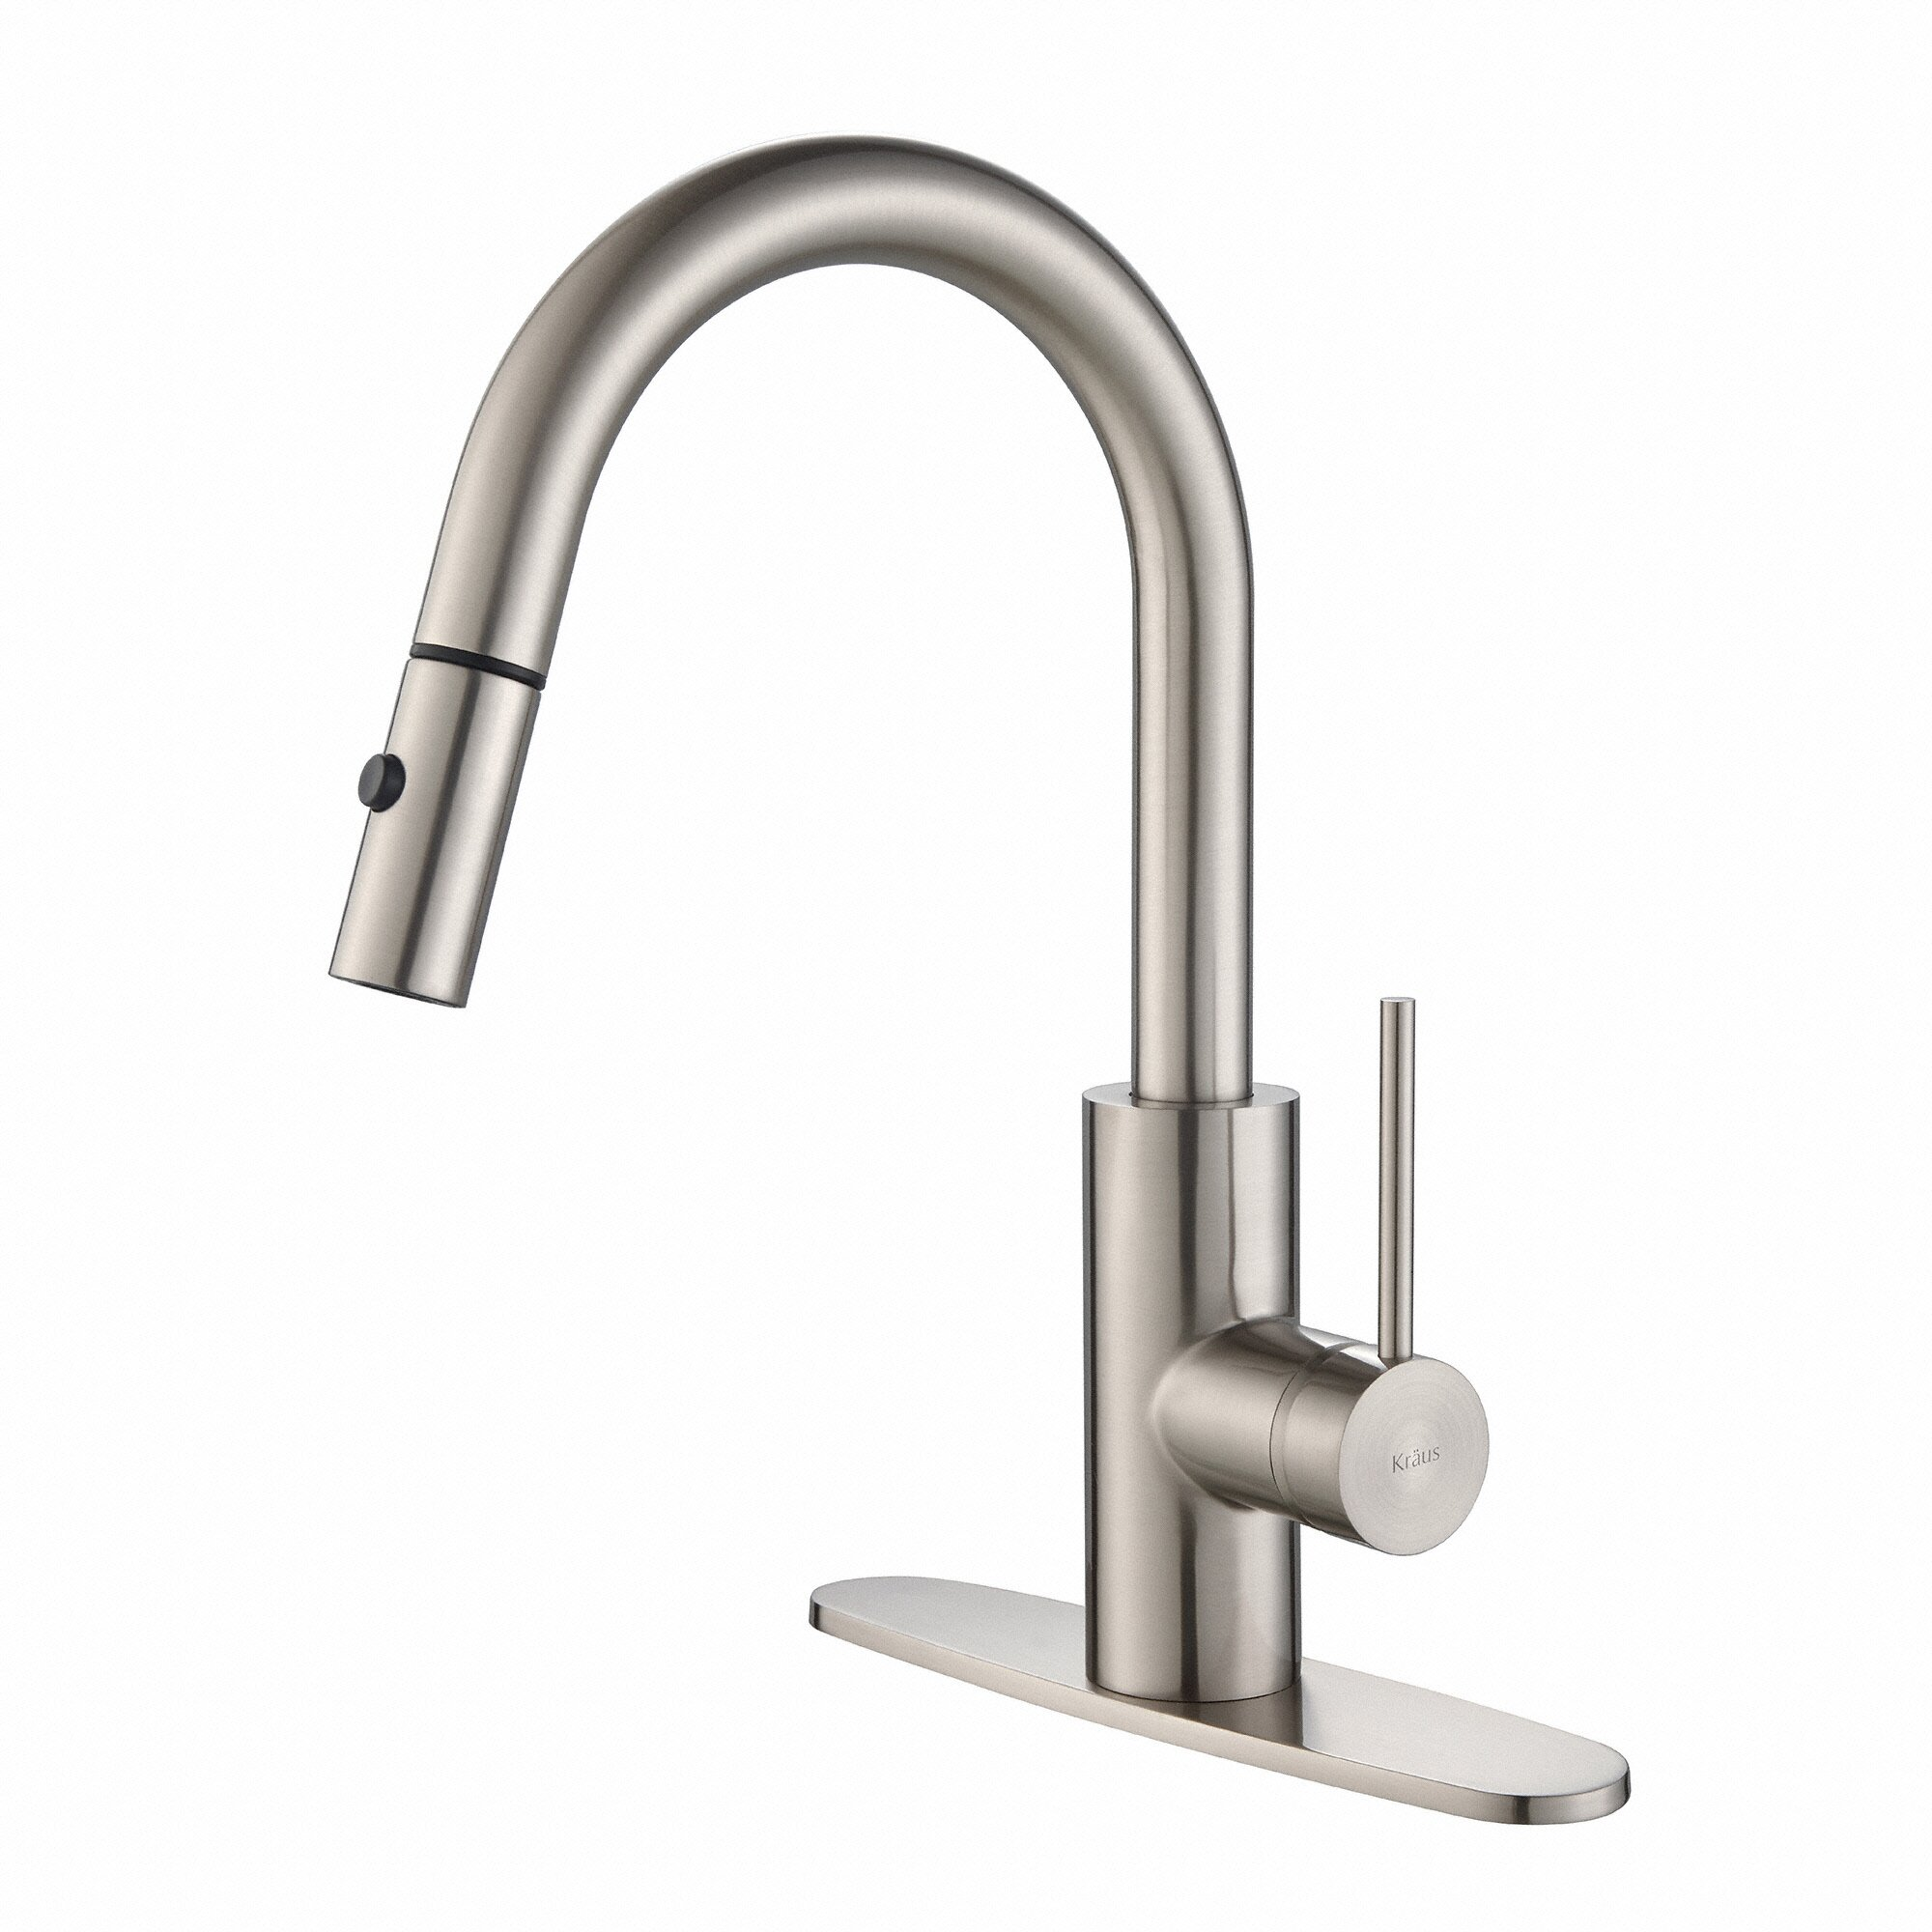 Kraus Faucets Reviews : Kraus Mateo? Single Lever Pull Down Kitchen Faucet & Reviews ...